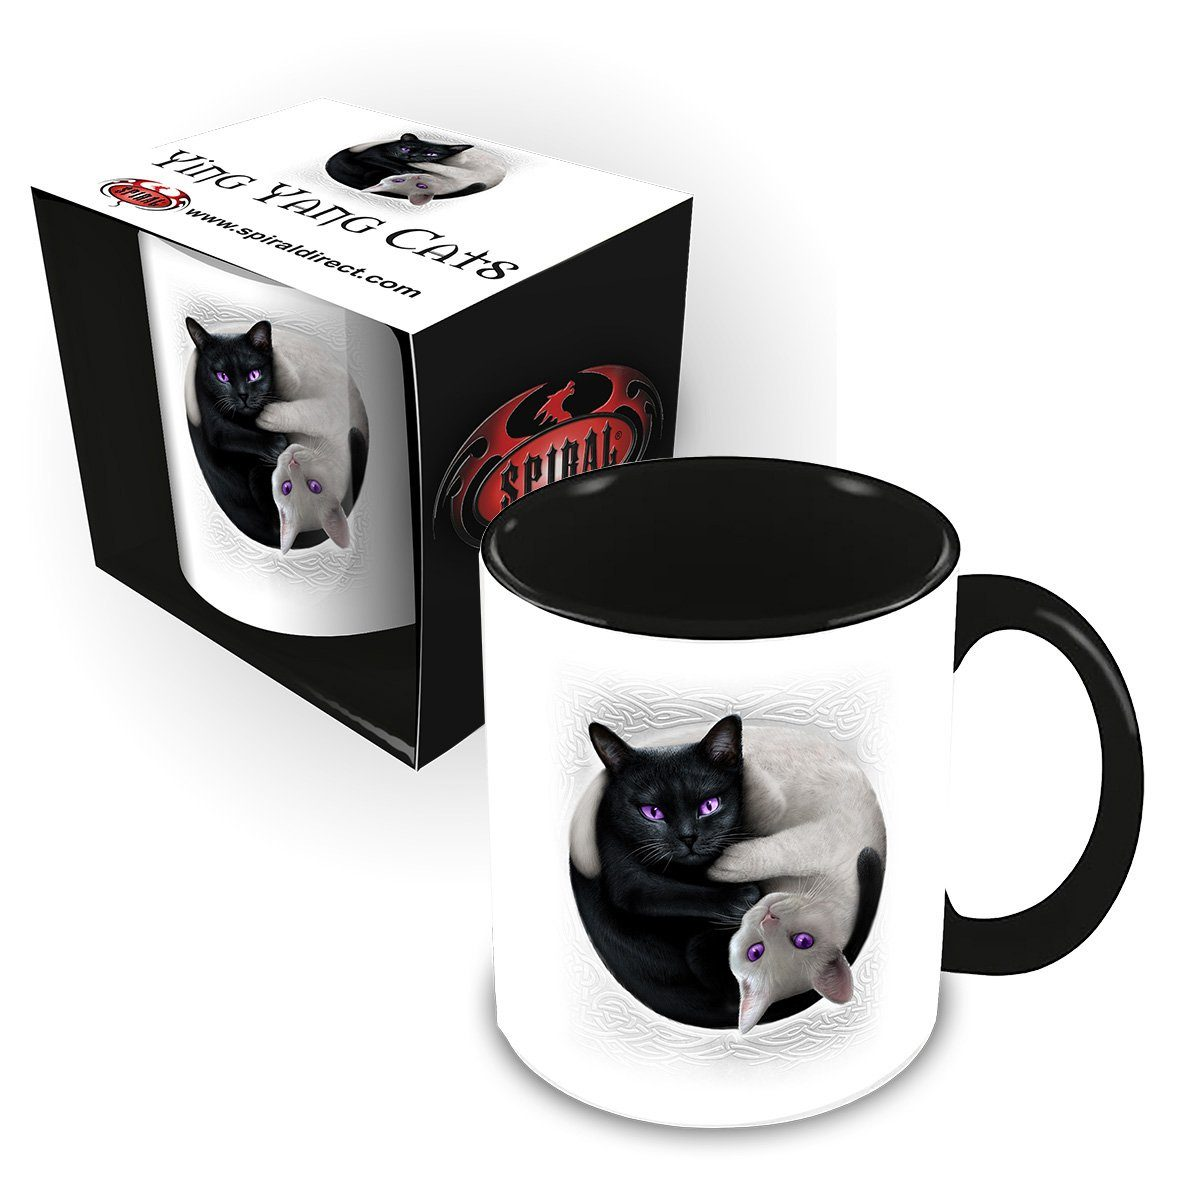 Two Cuddly Cats Ceramic Coffee Mug